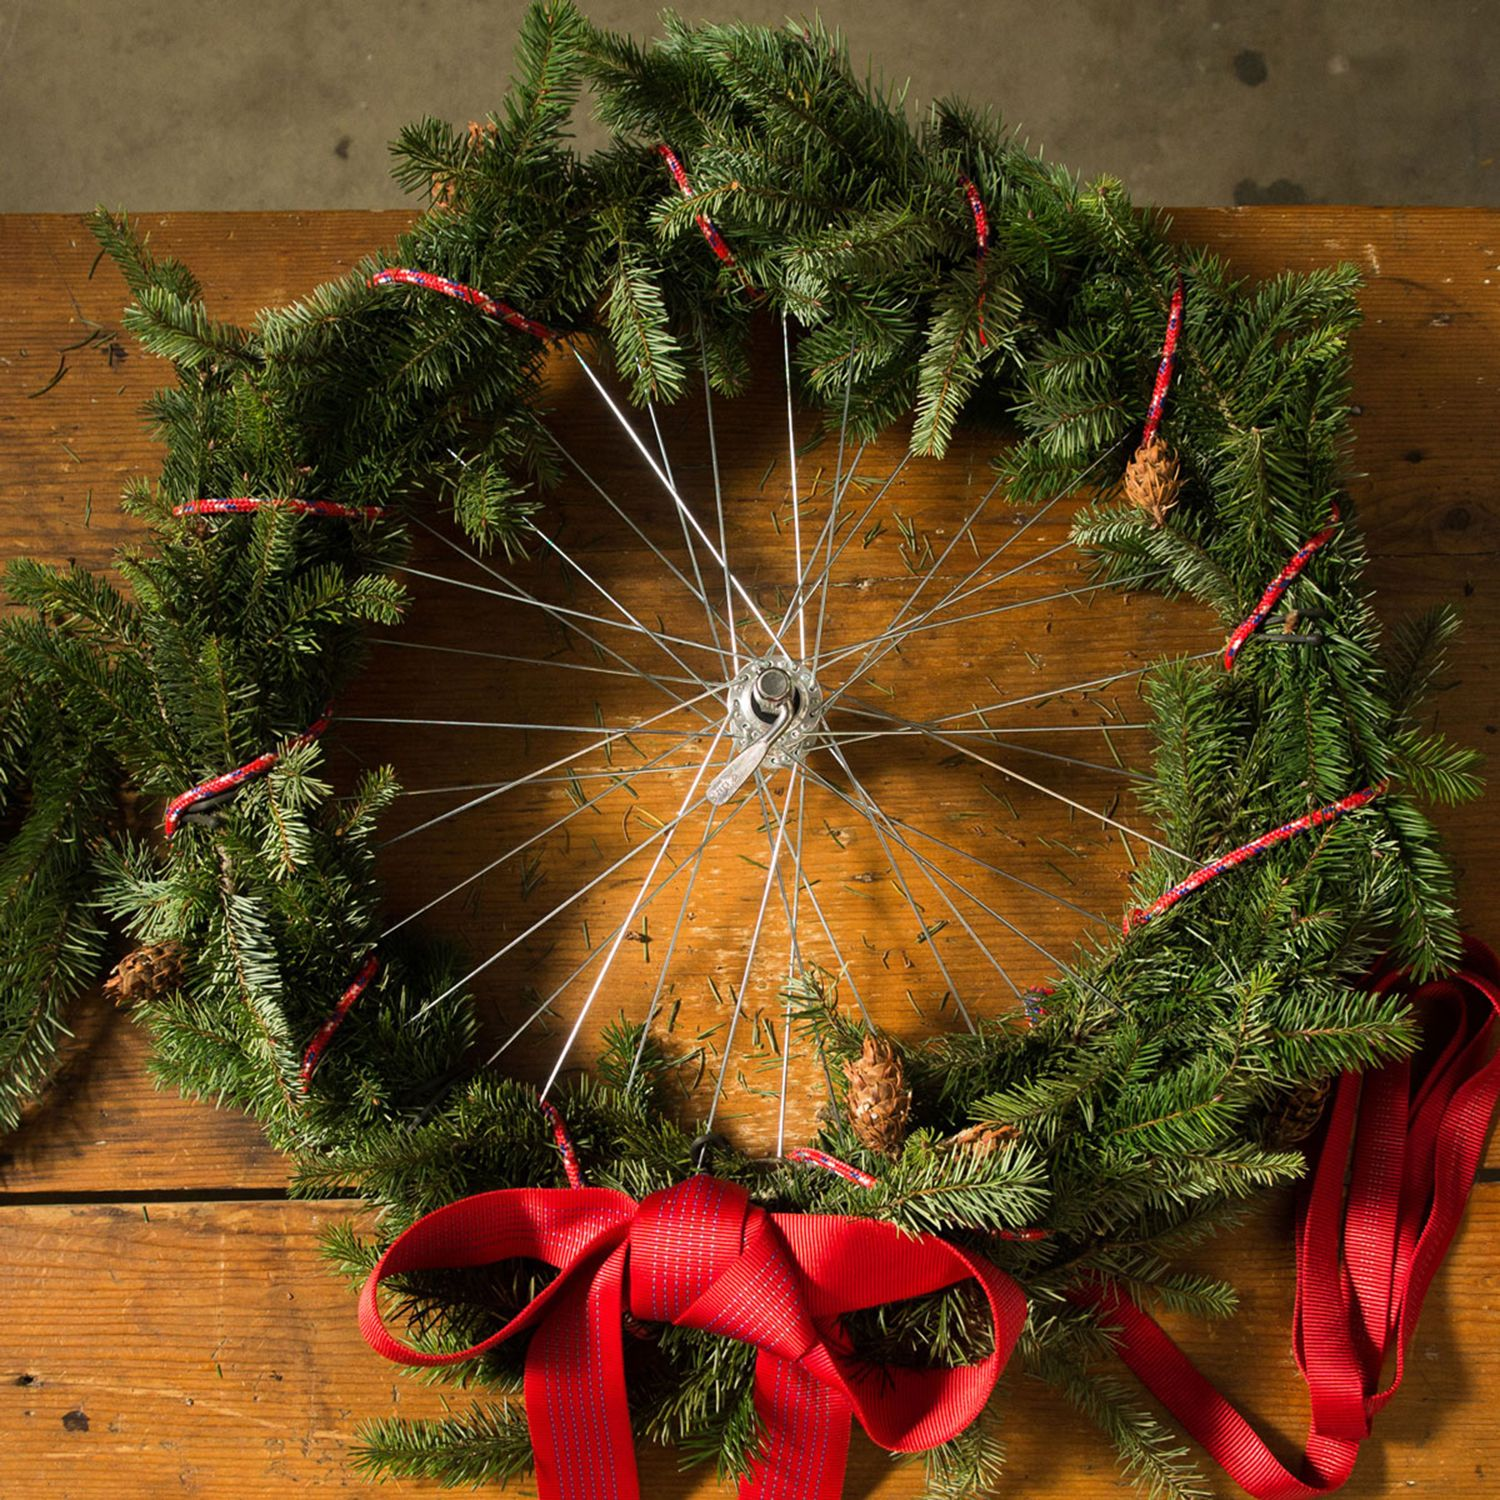 Decorate for the holidays by using old bike wheels